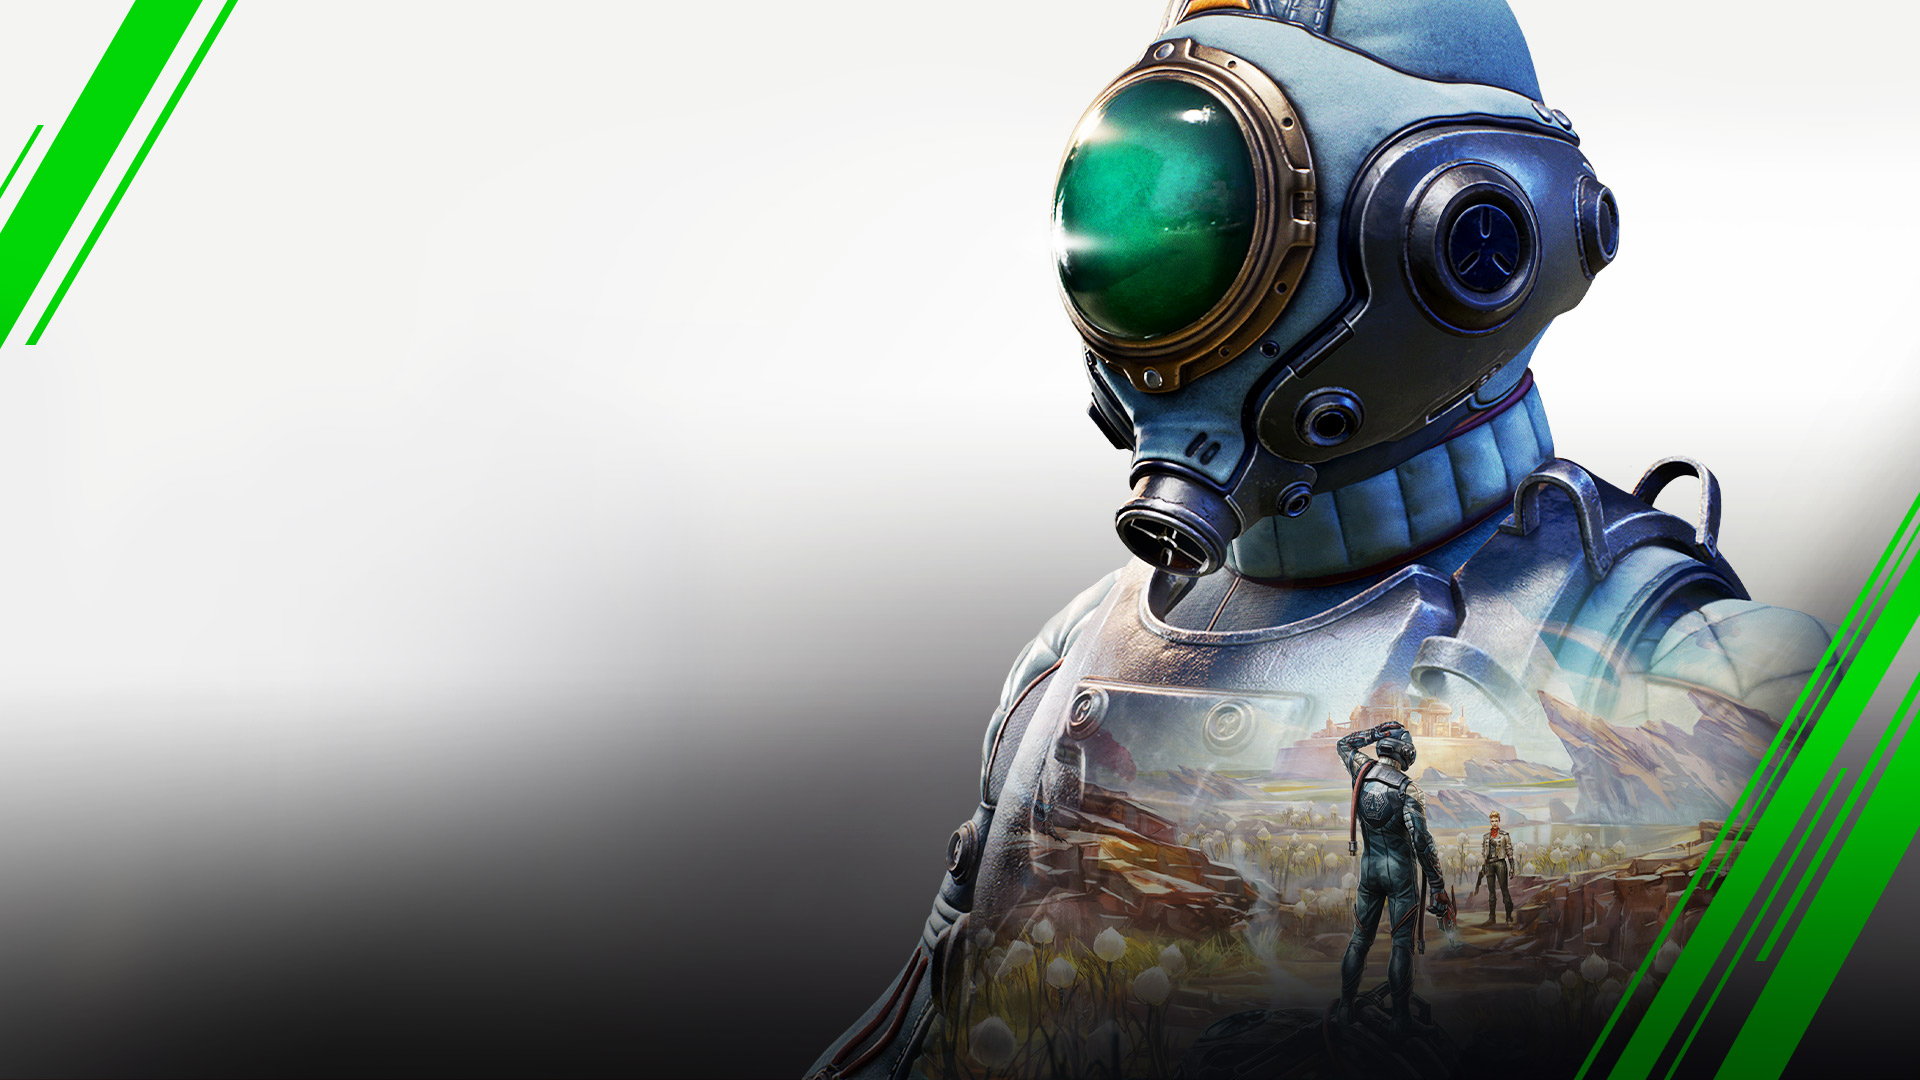 Game art from The Outer Worlds showing a character in a space suit